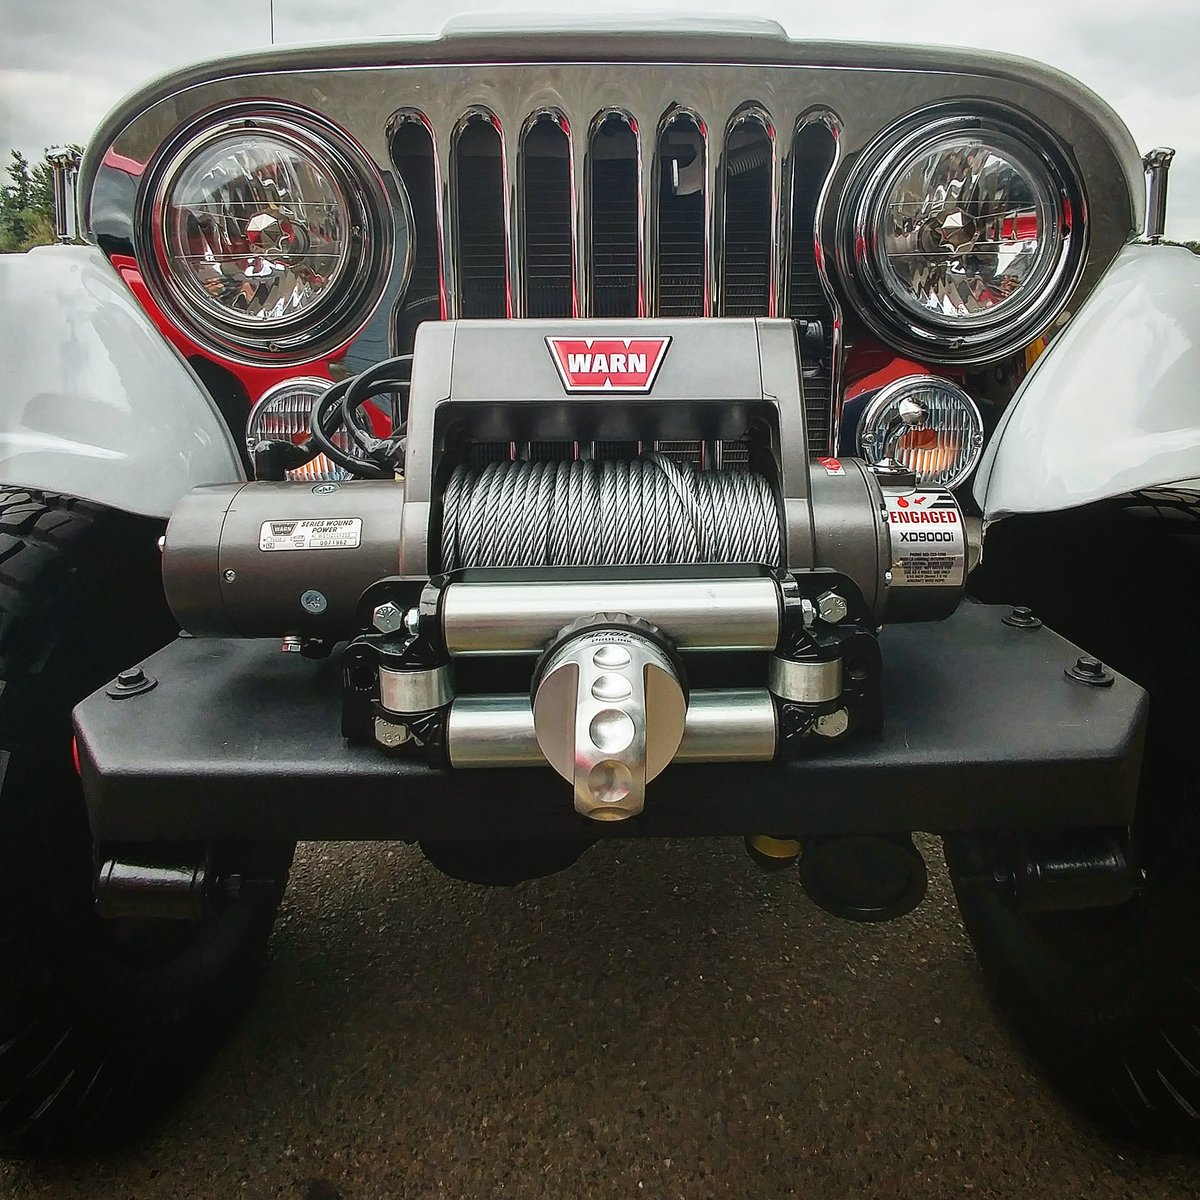 Jeep Scrambler w/383 Stroker + WARN XD9000i = #GOPREPARED https://t.co/BOnAESqoF7